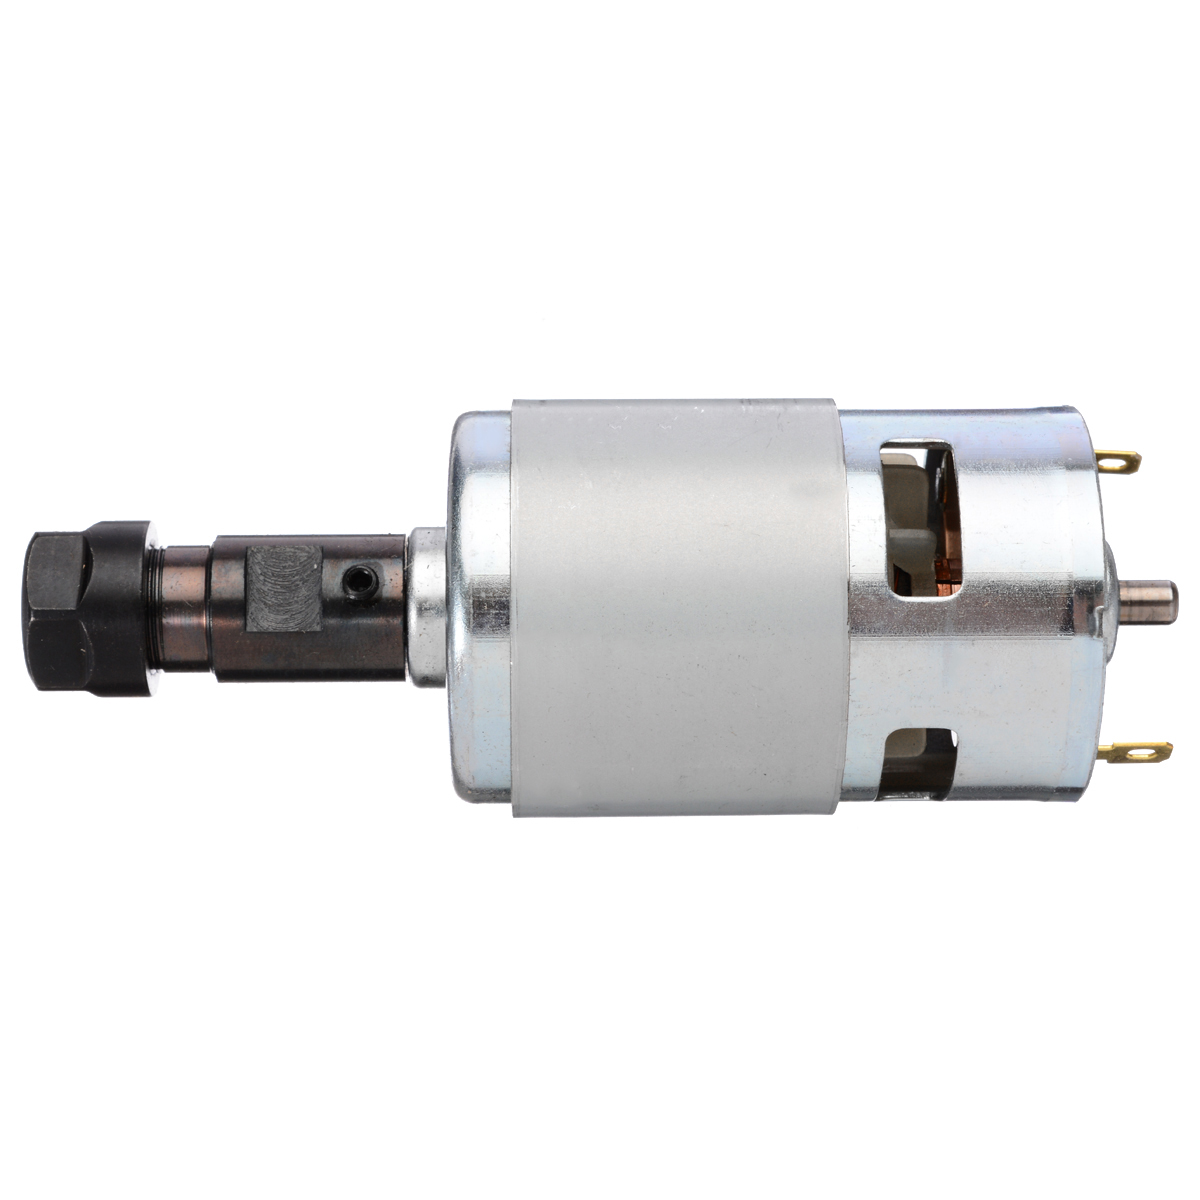 1Pcs 775 DC Motor 12 36V with ER11 Spindle Replacement Part For CNC font b Router